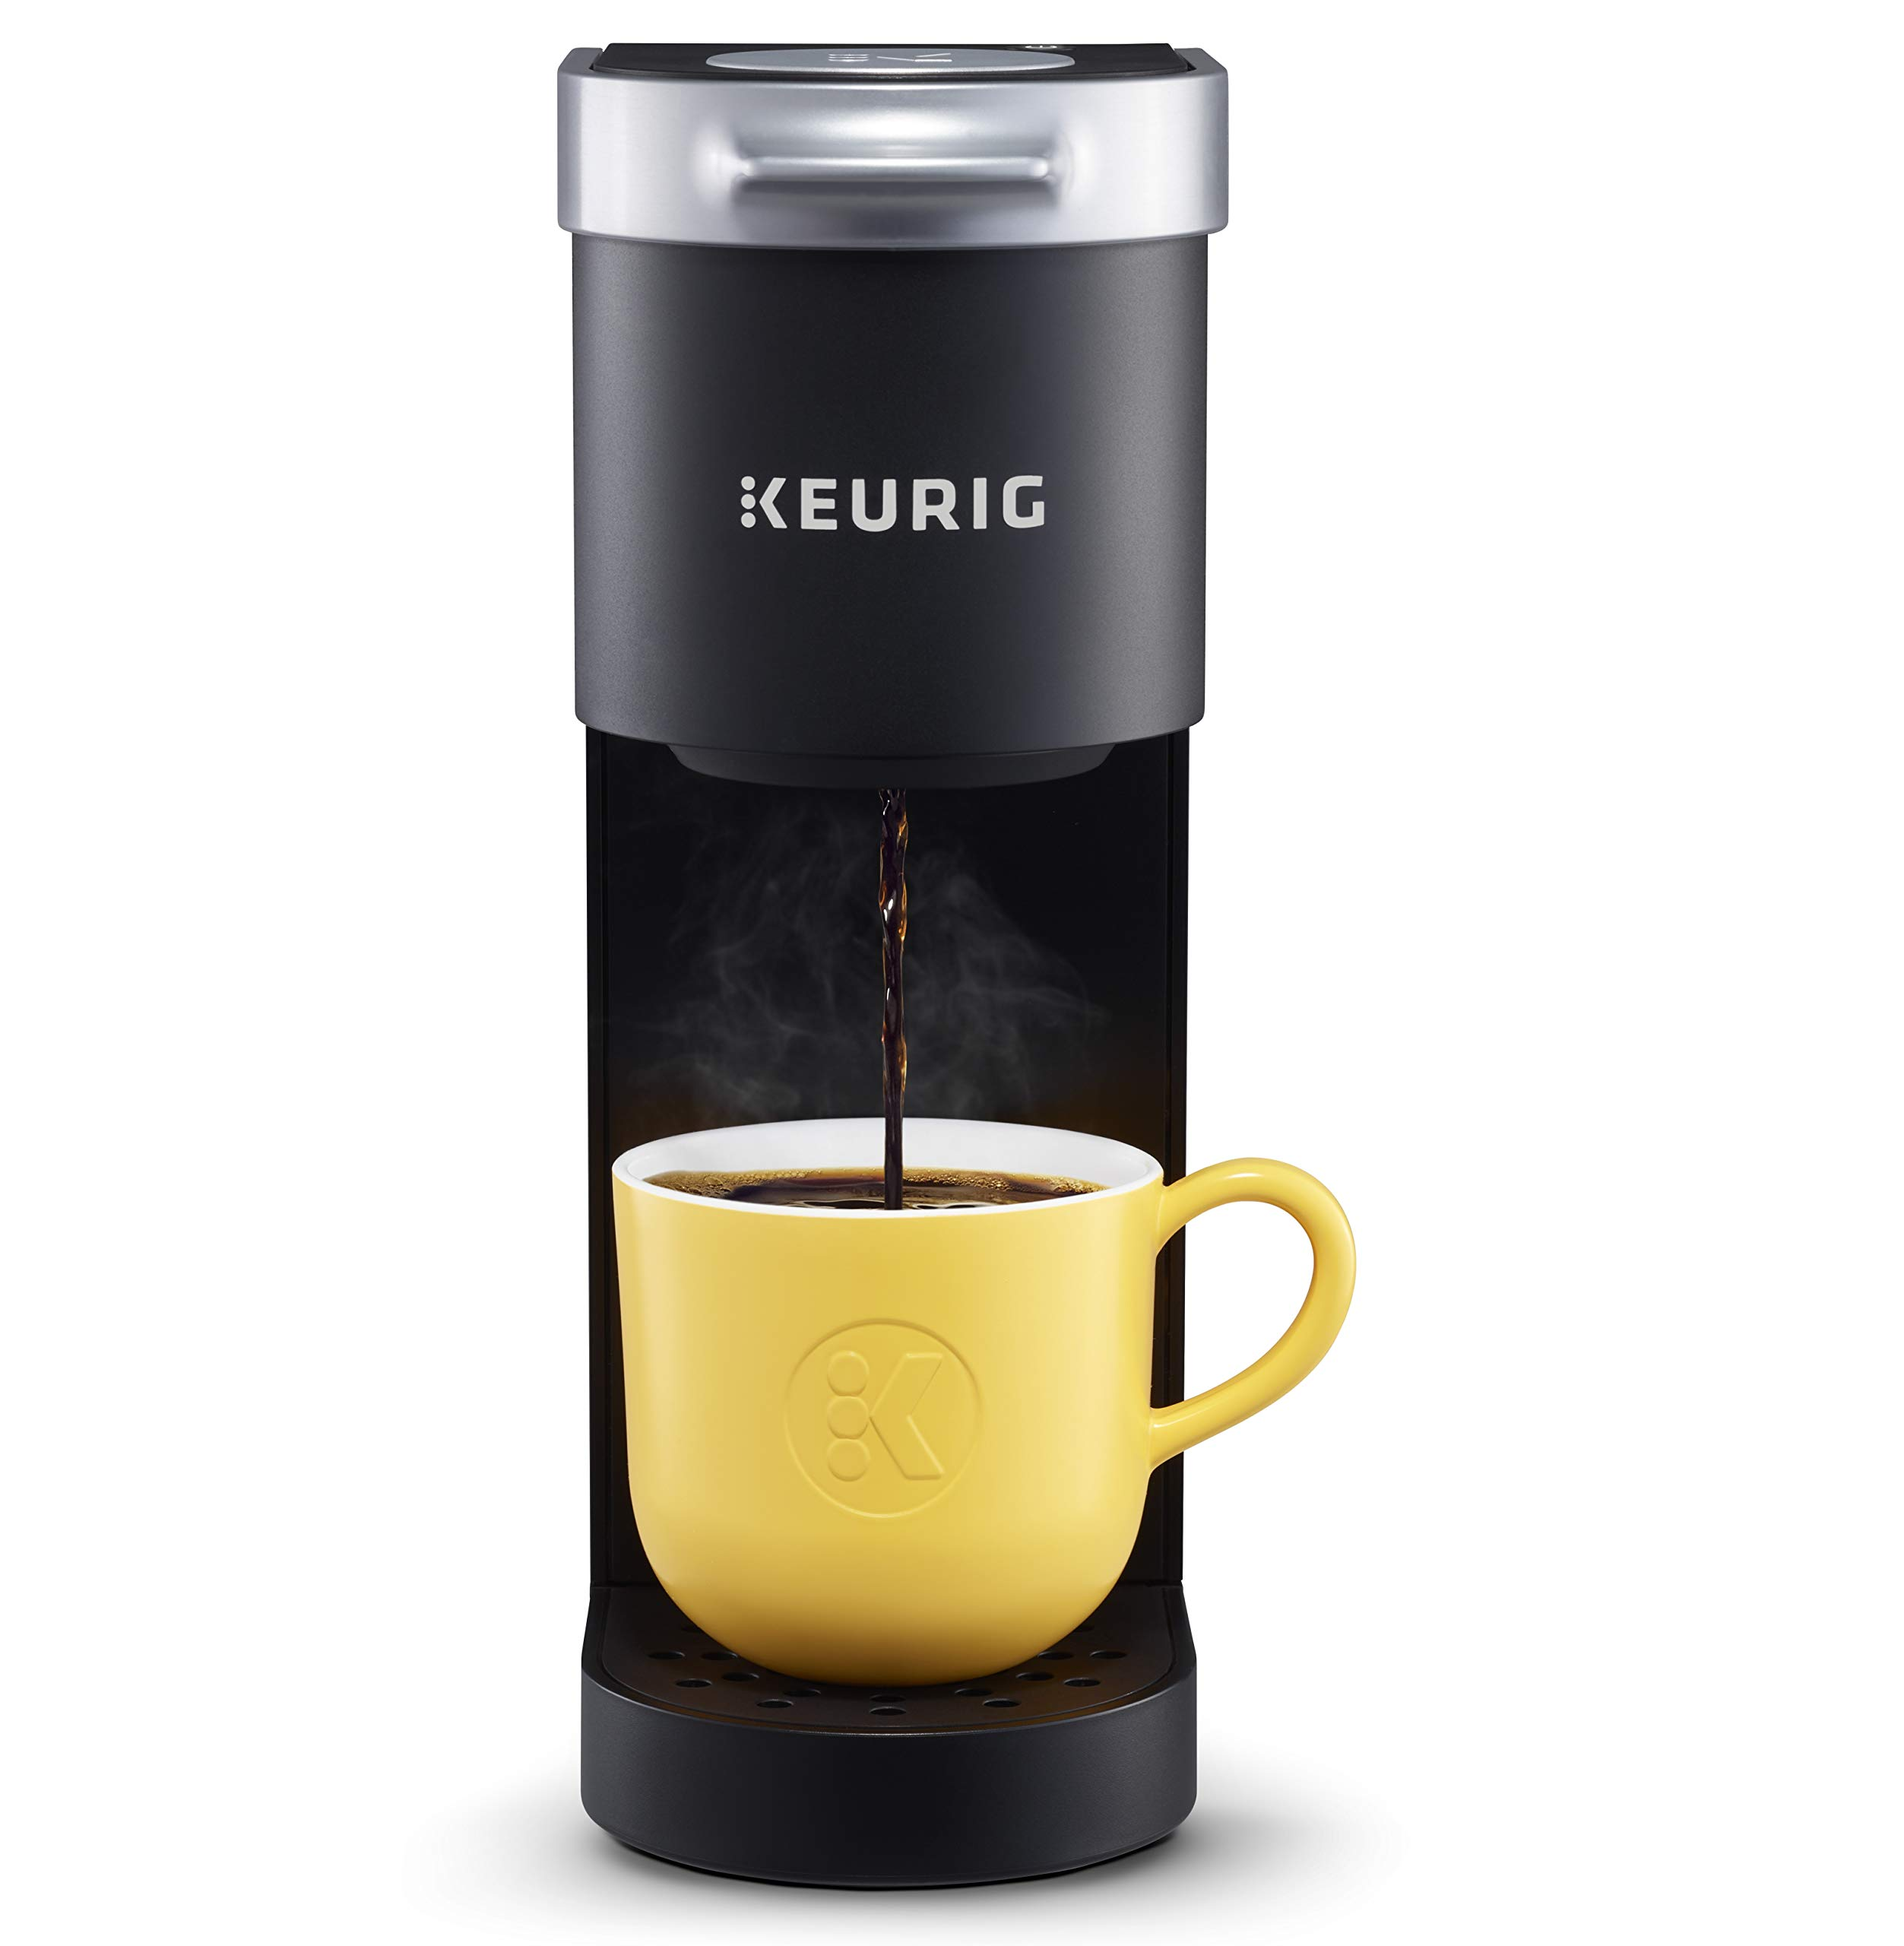 Keurig K-Mini Coffee Maker, Single Serve K-Cup Pod Coffee Brewer, 6 to 12 oz. Brew Sizes, Matte Black by Keurig